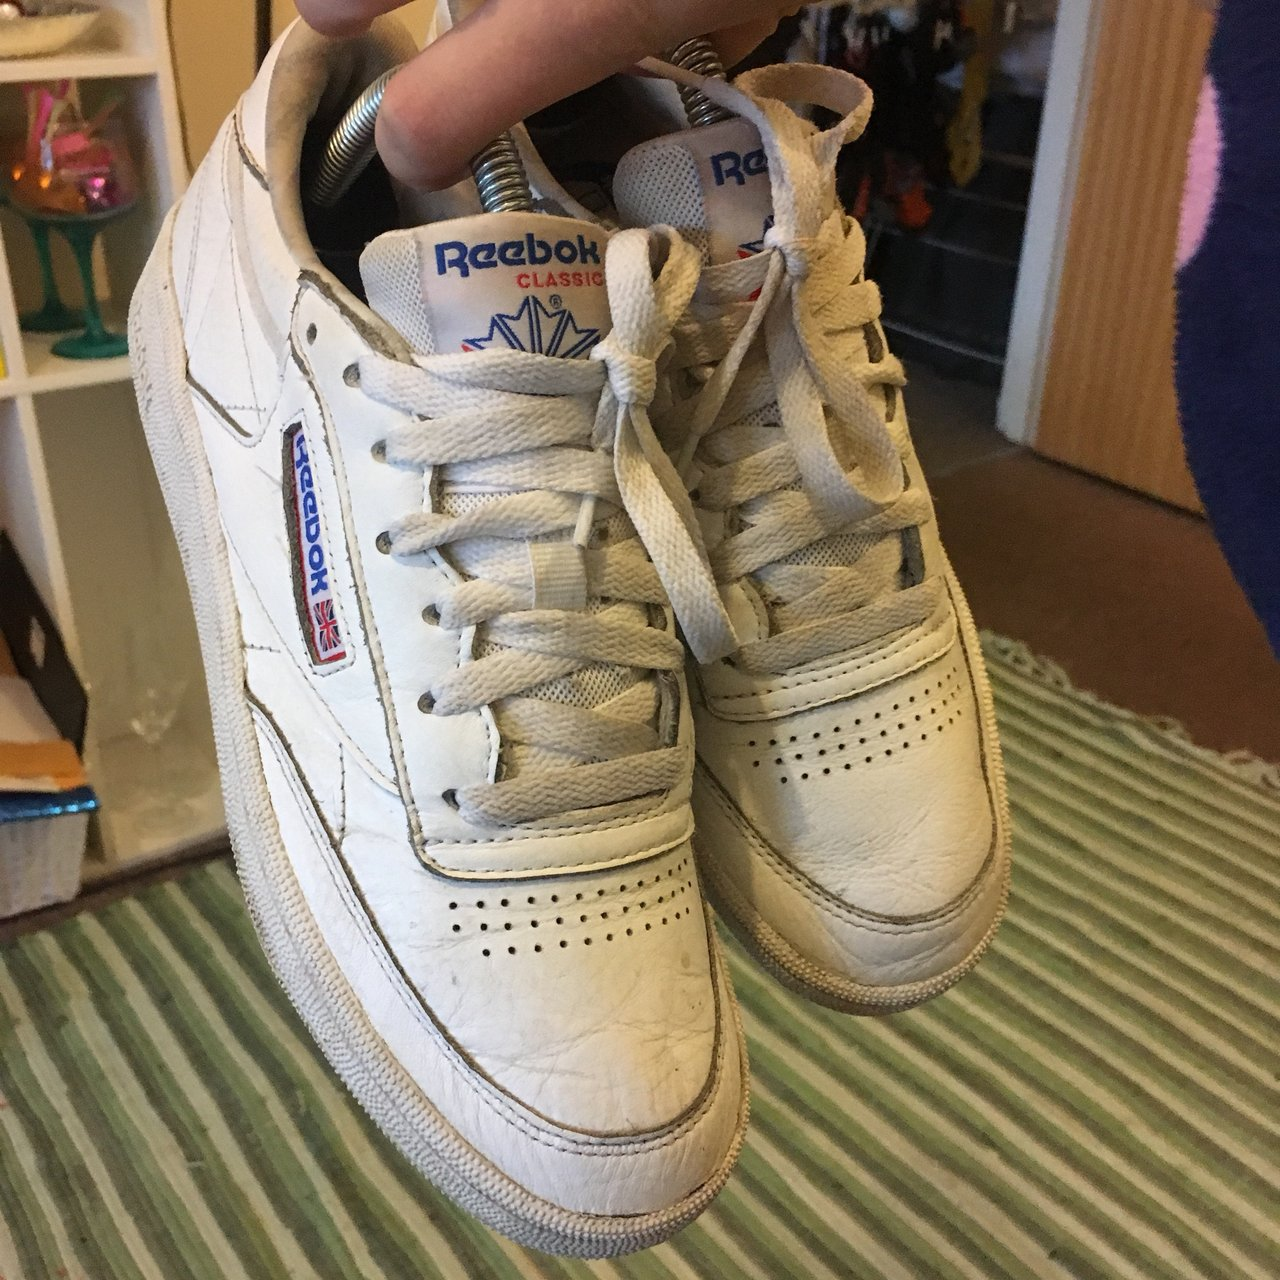 2bded777c72 SELLING CHEAP - Price includes postage 😱 Reebok women s c - Depop